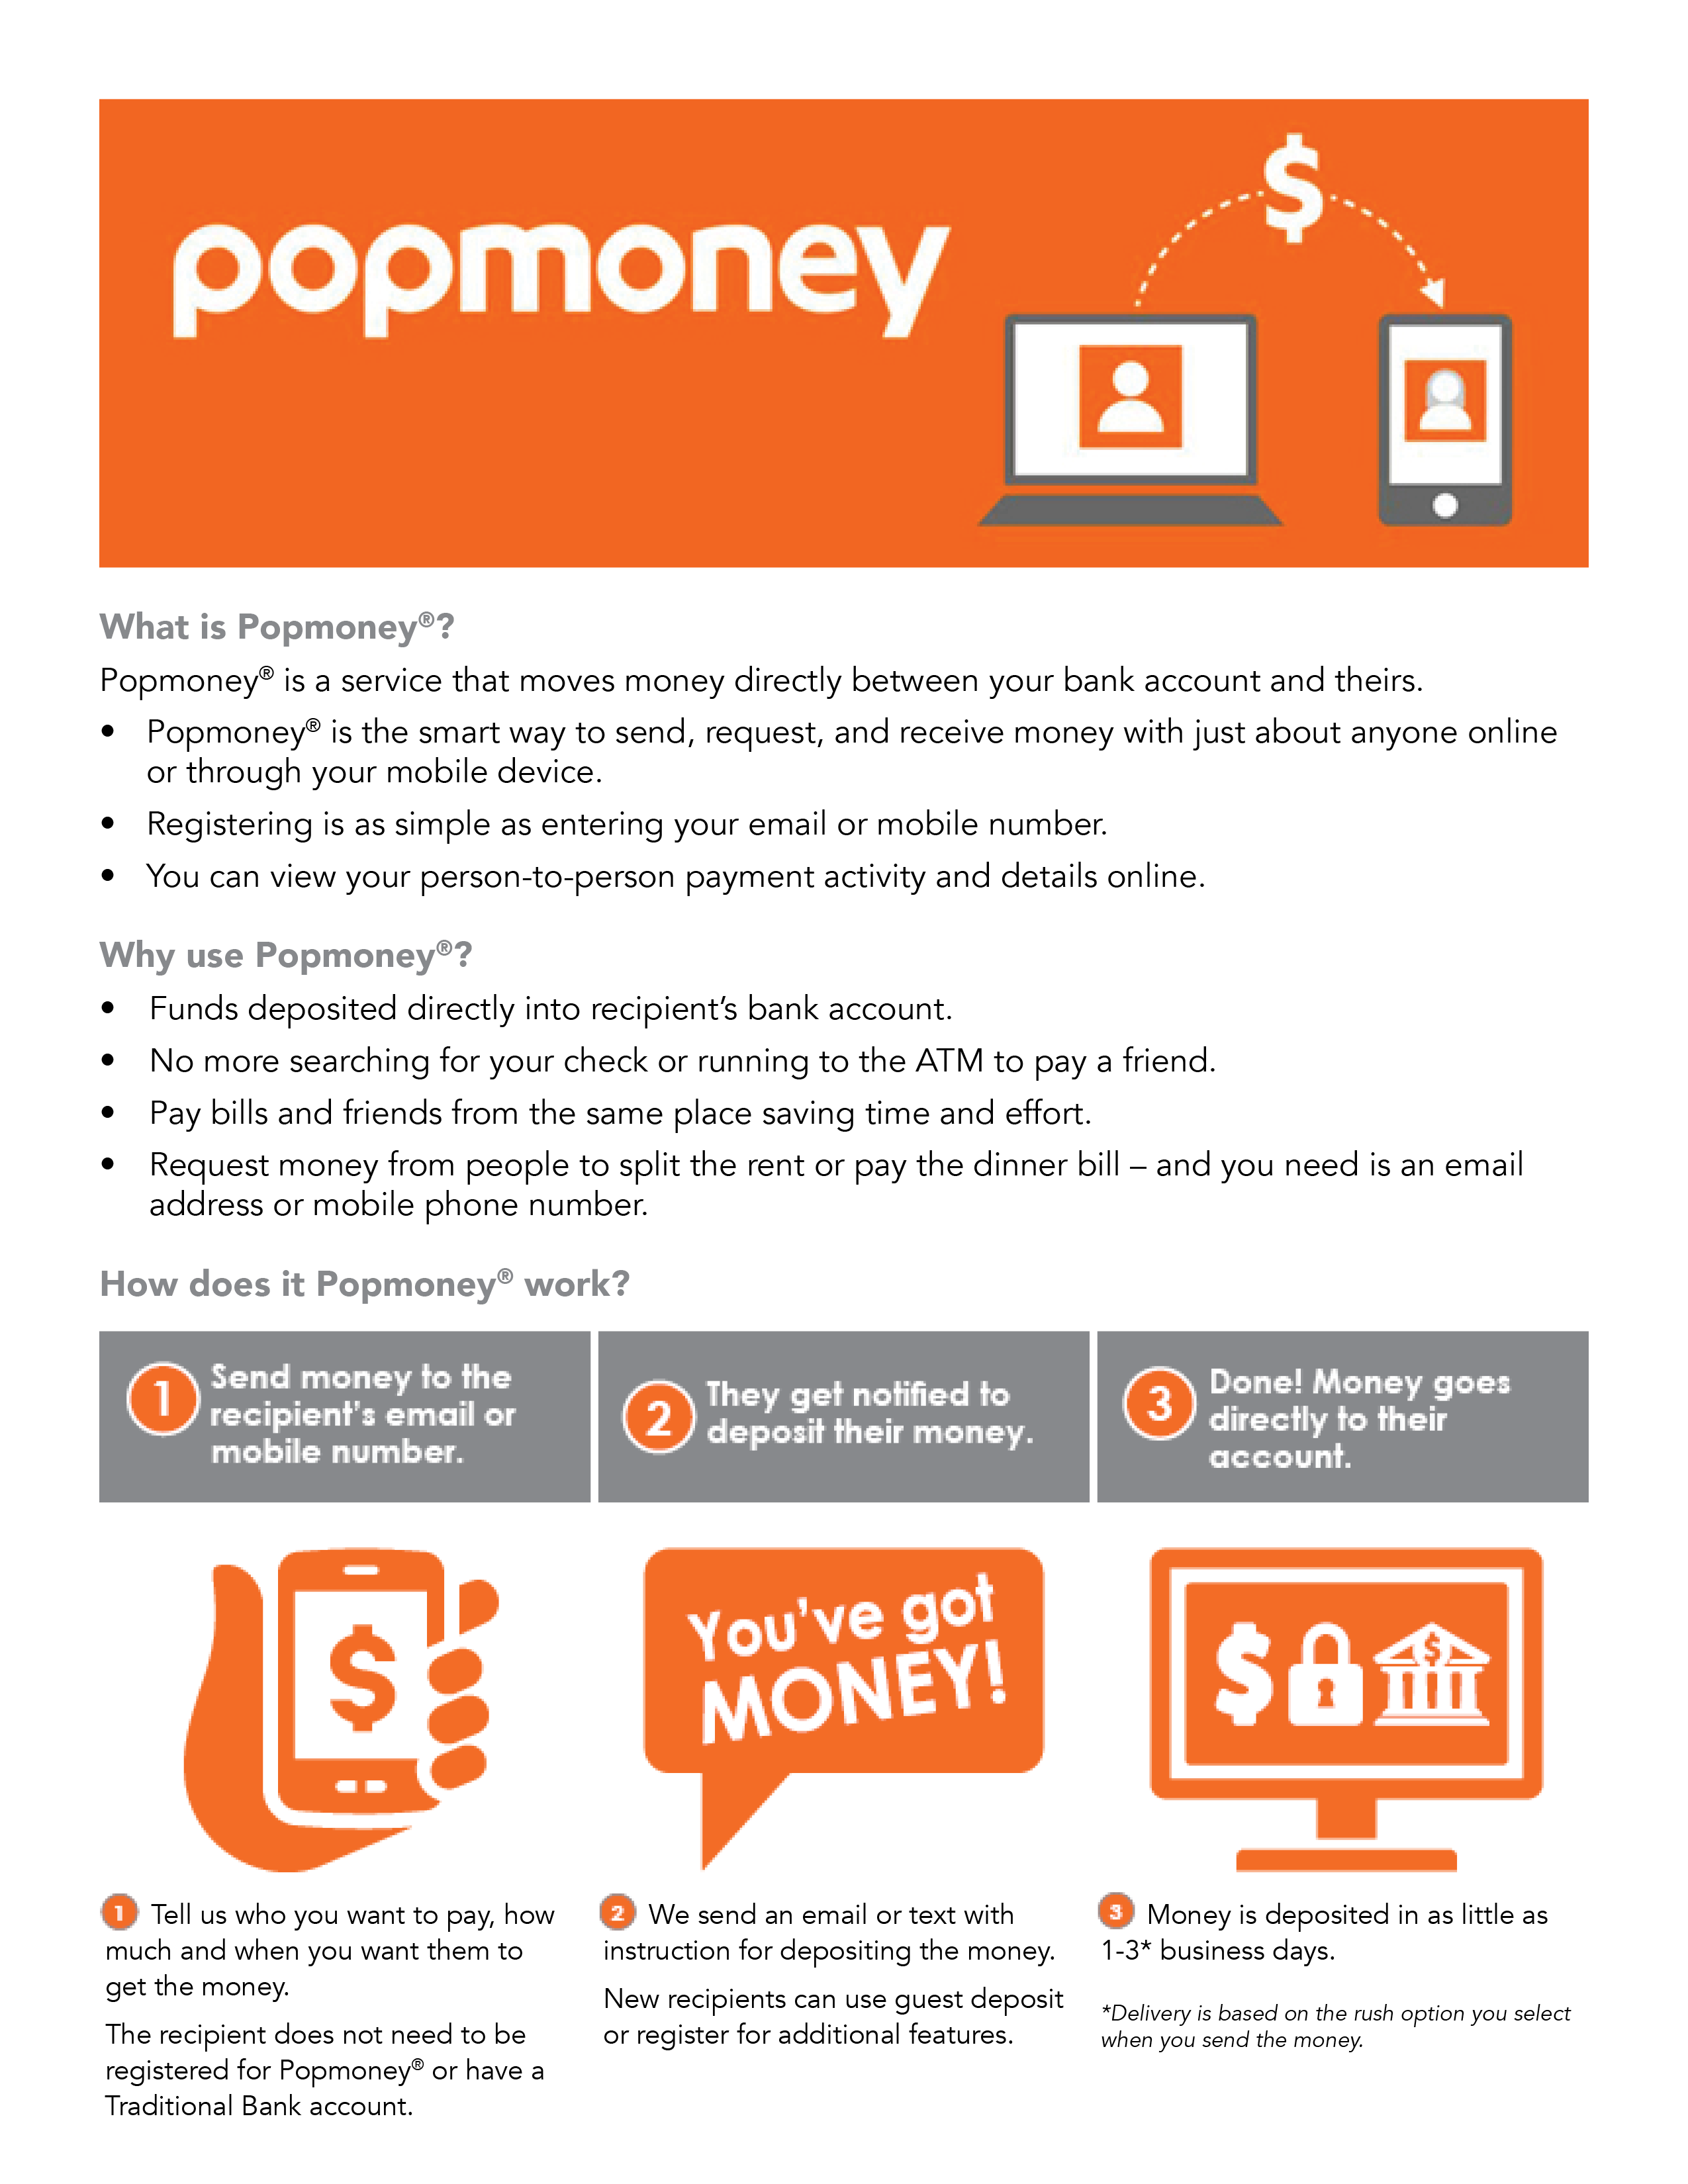 What is Popmoney?